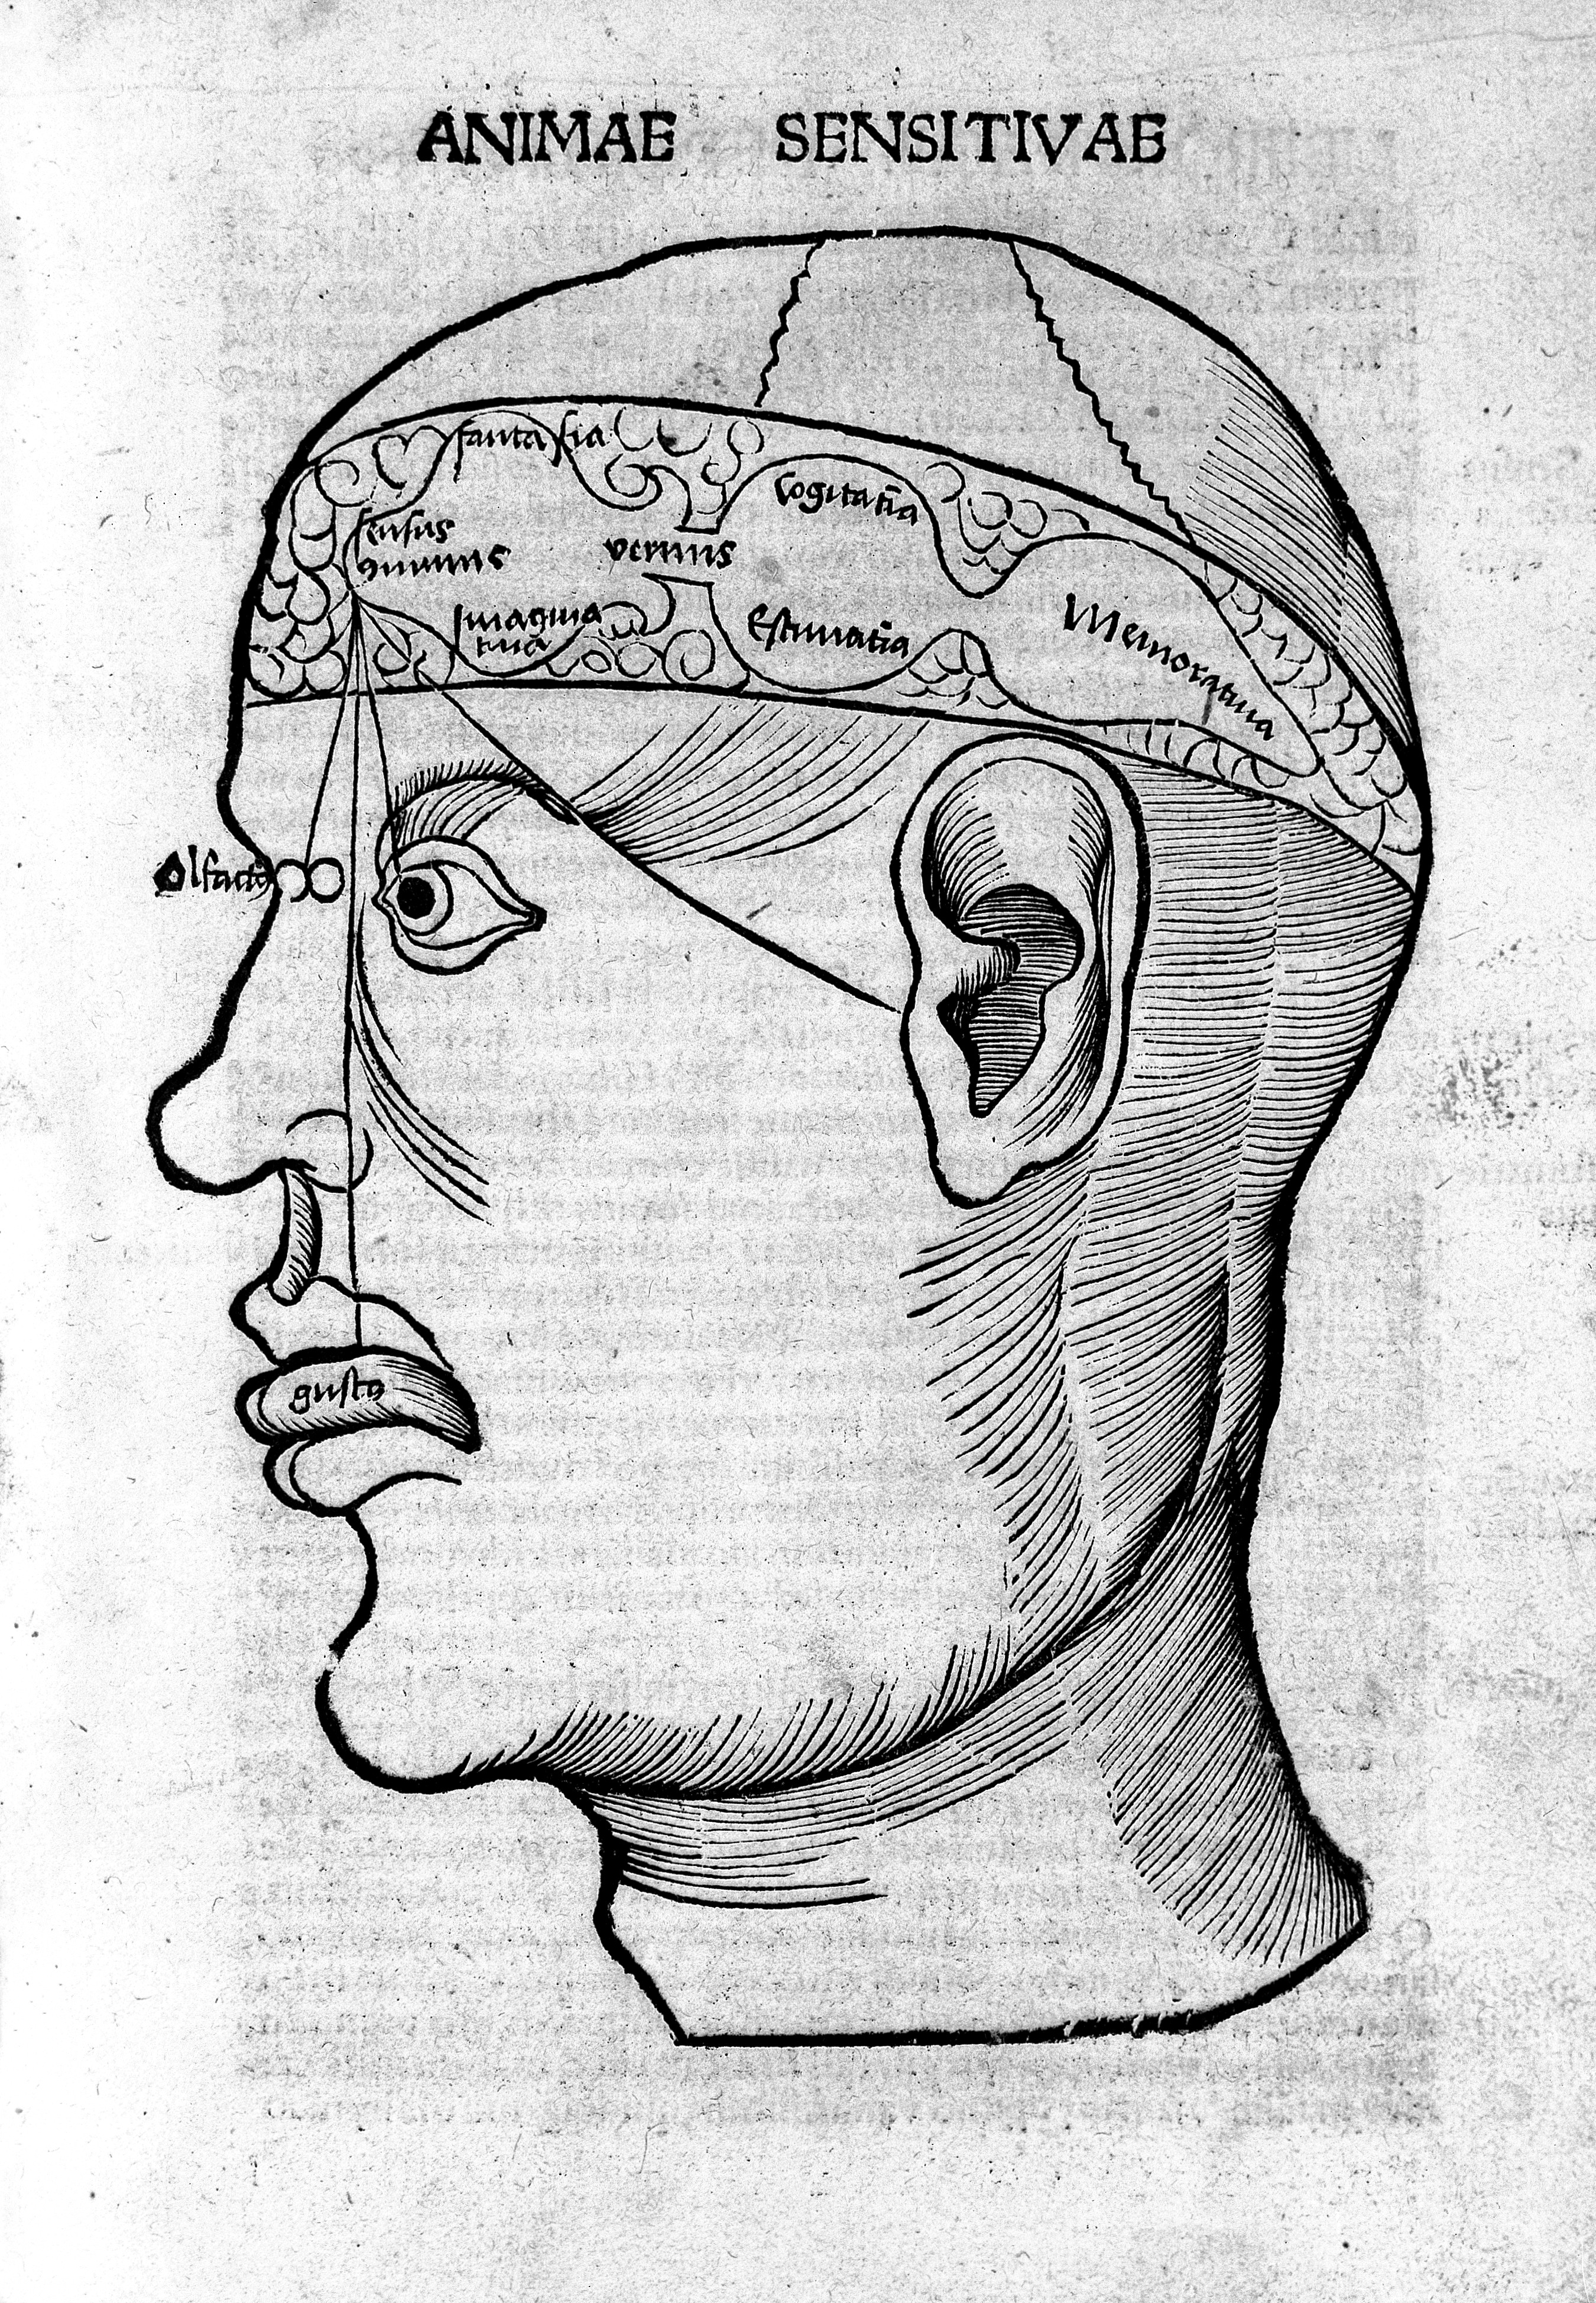 Filewoodcut Of Head Showing Cerebral Ventricles Wellcome M0000436